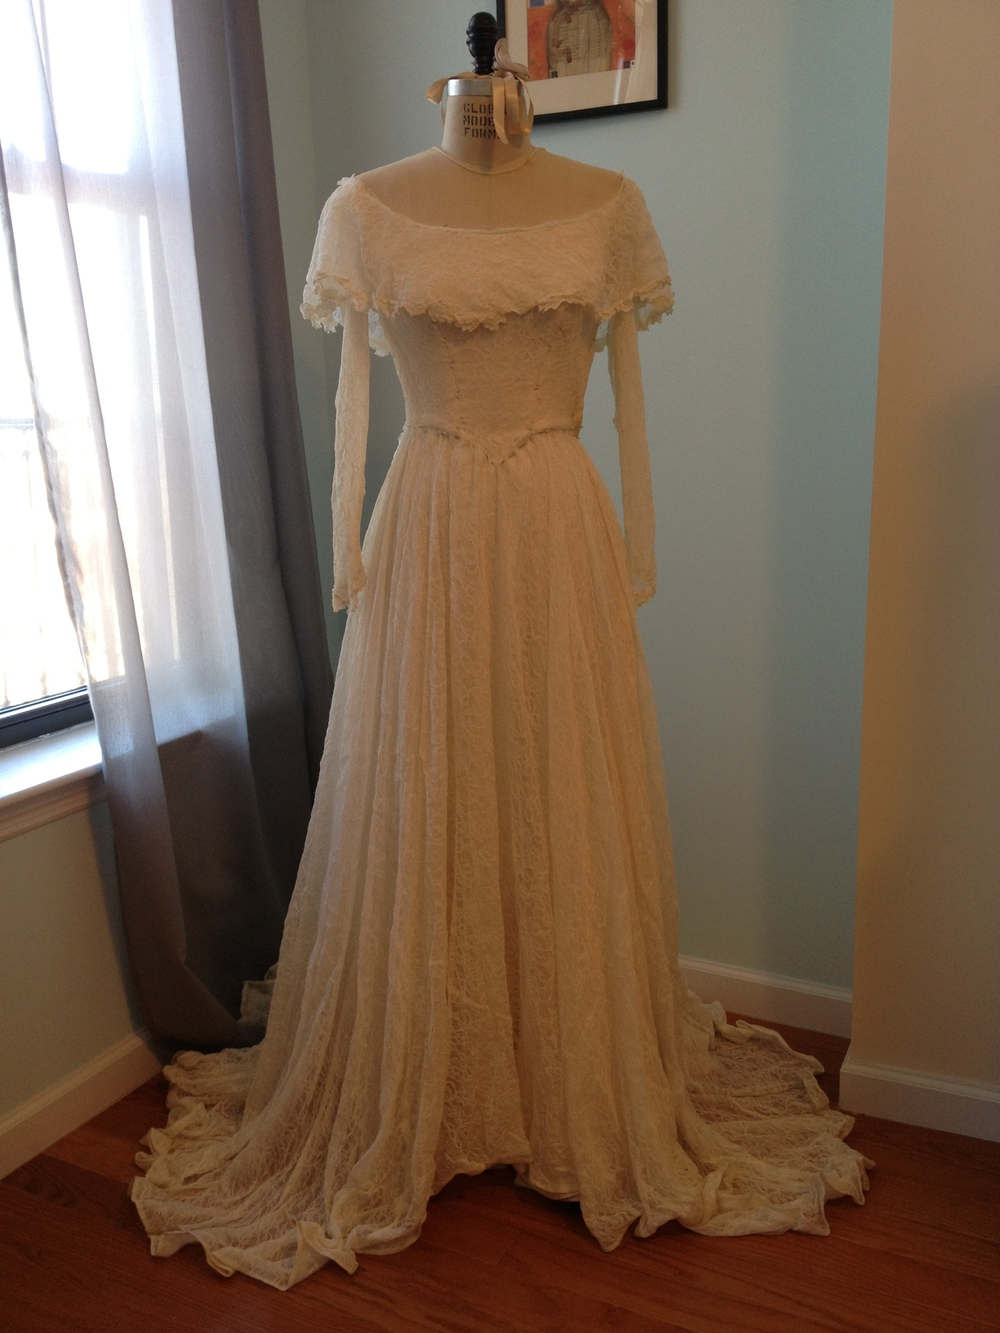 Vintage 1940's gown worn by bride's grandmother